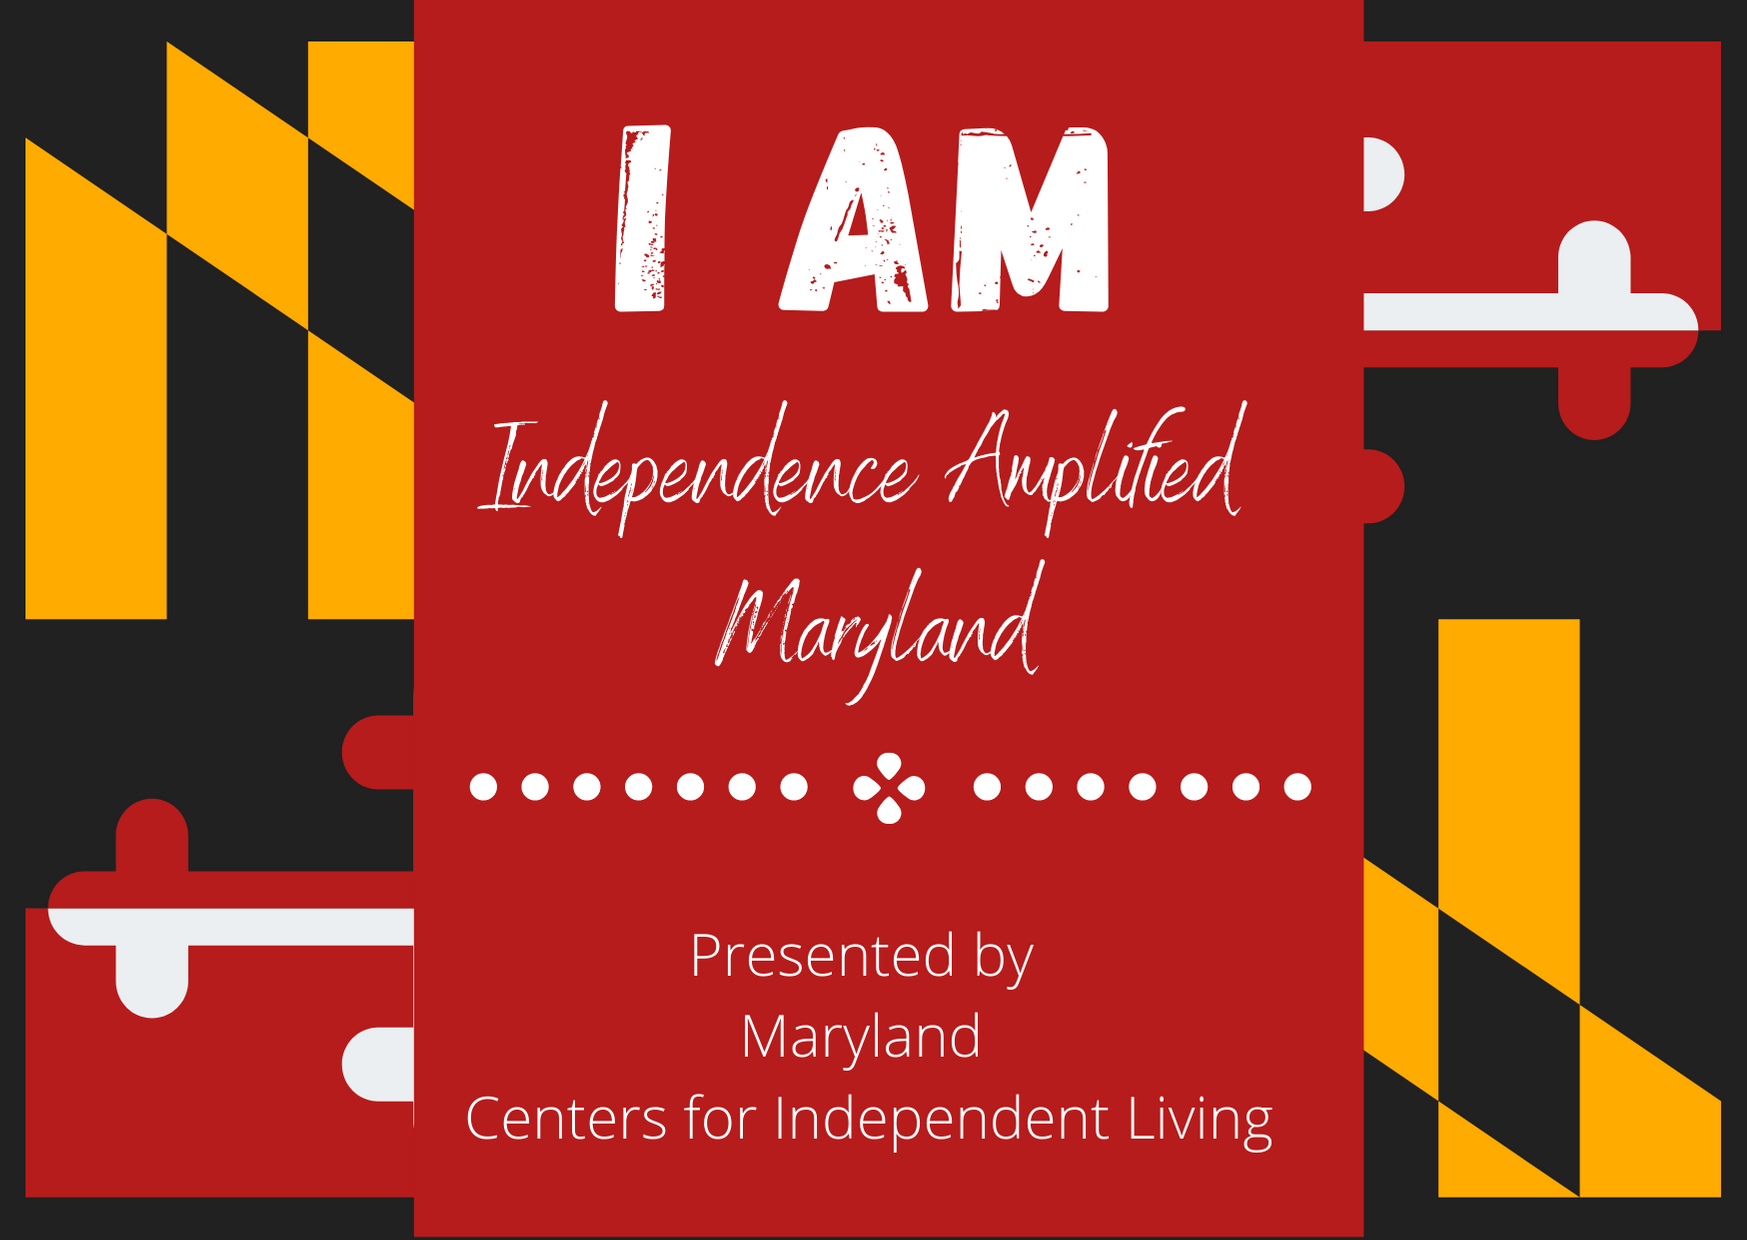 Independence Amplified Maryland (I AM)  flyer with maryland flag design